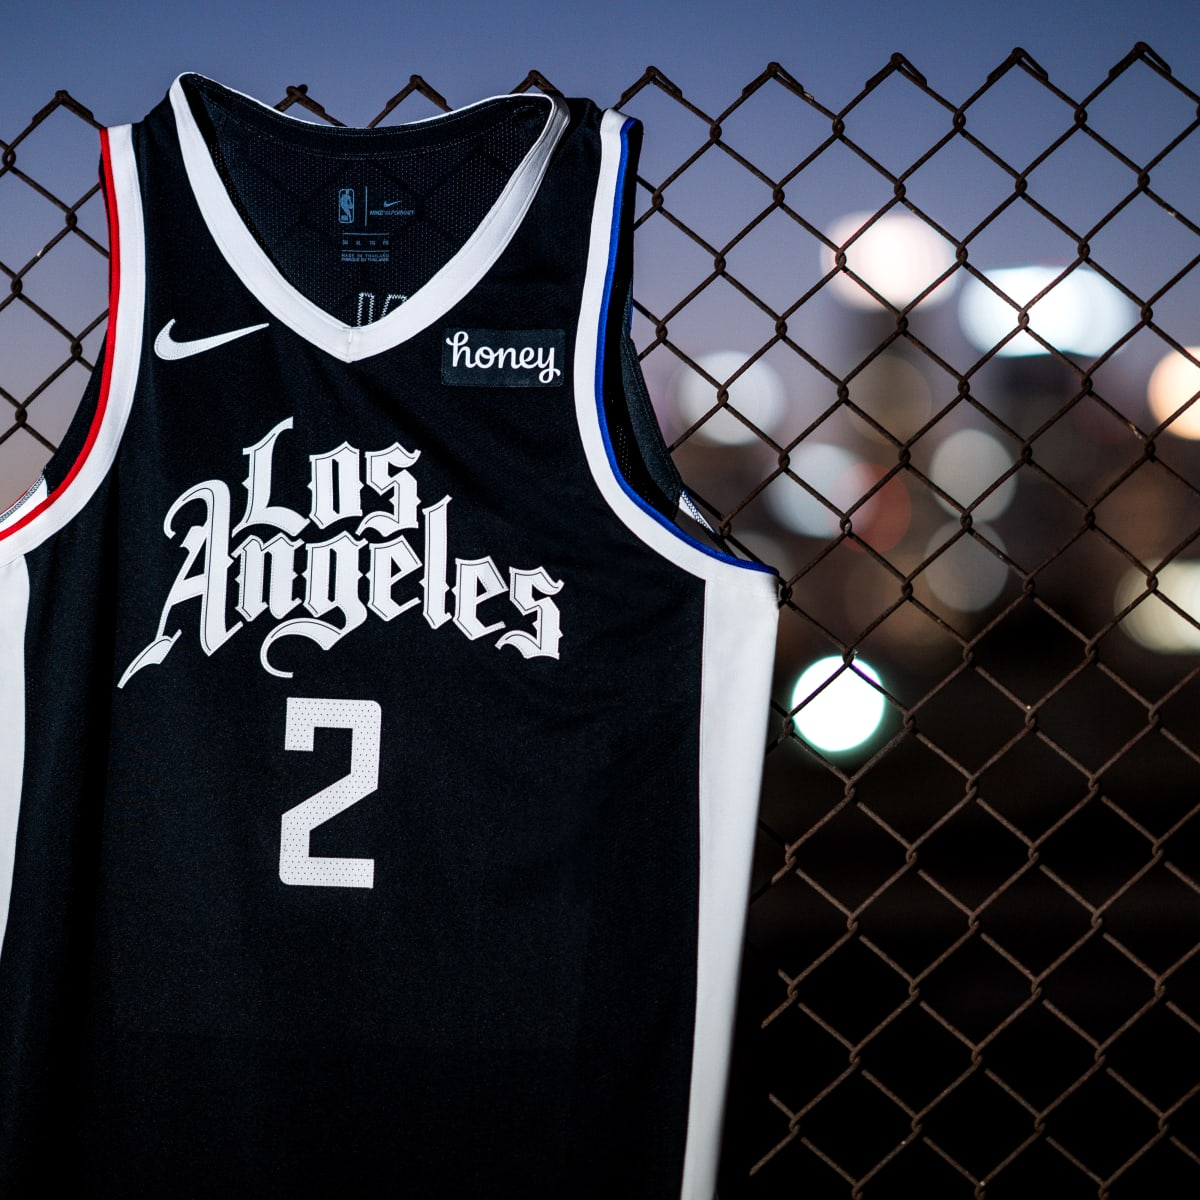 First Look La Clippers Partner With Mister Cartoon For 2020 21 City Edition Jerseys Sports Illustrated La Clippers News Analysis And More